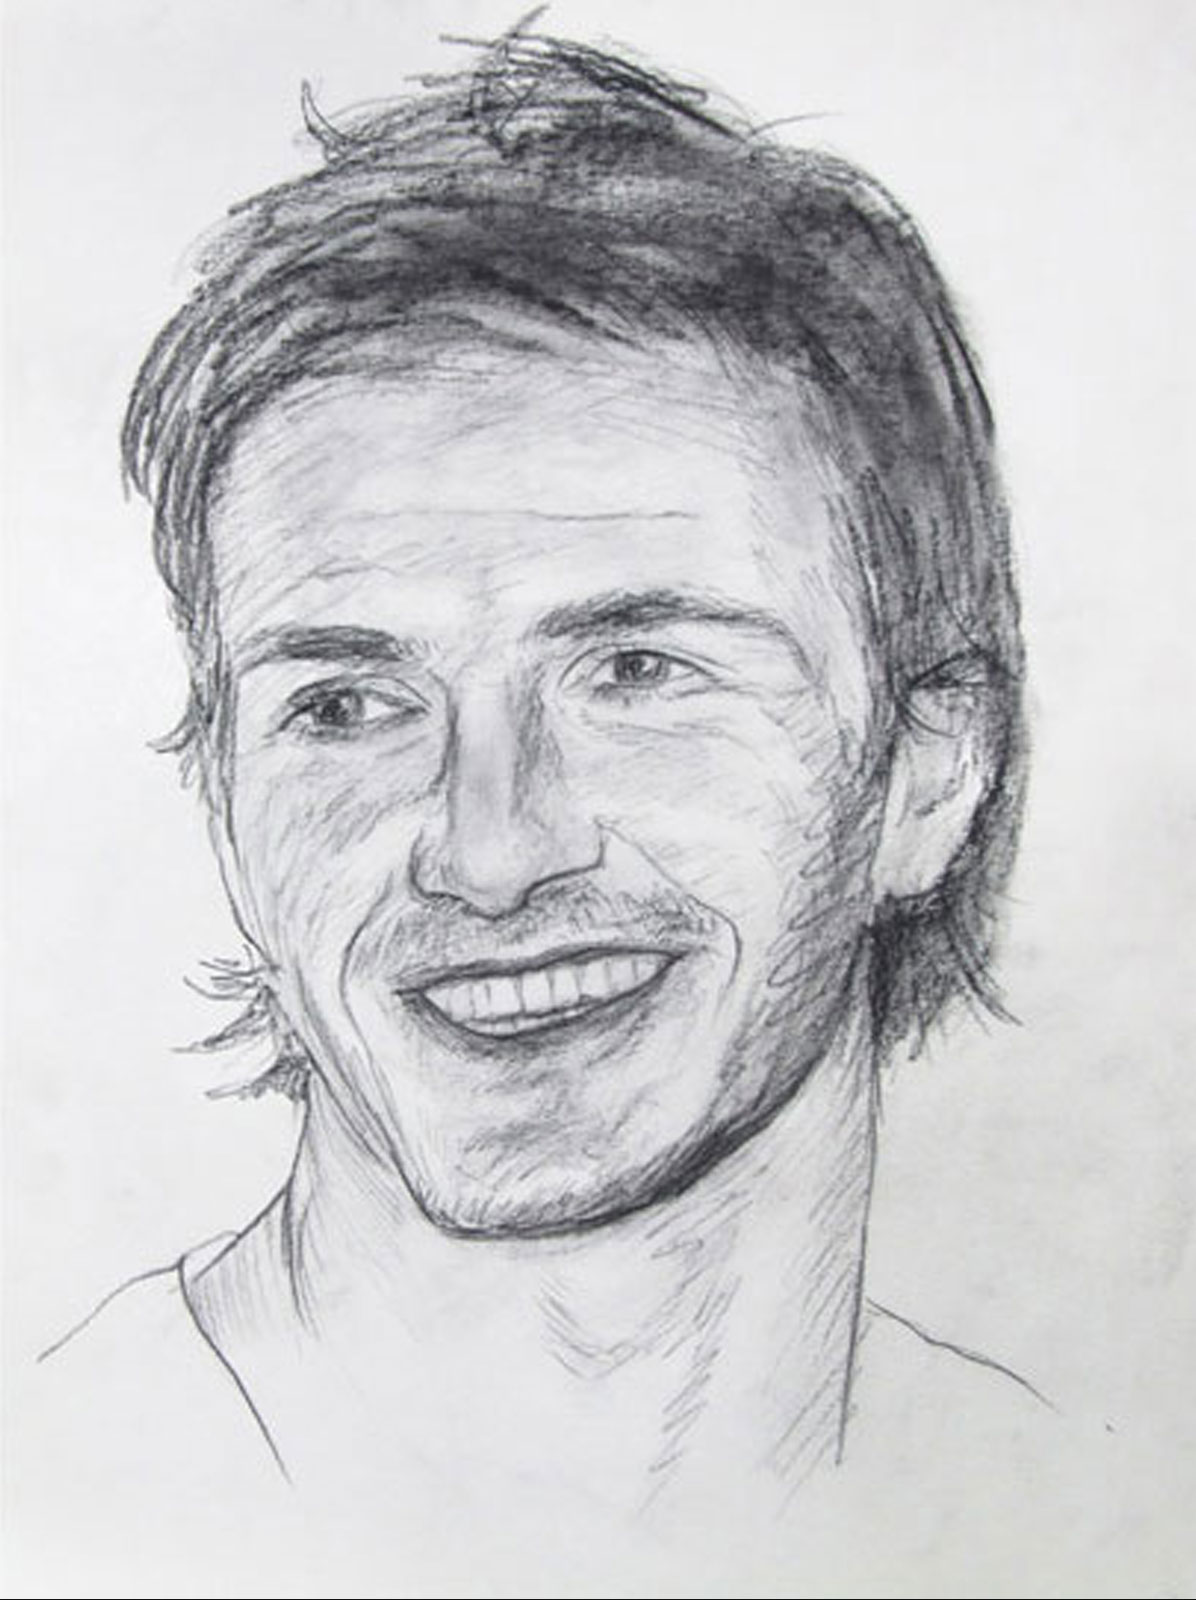 David Beckham portrait drawing on paper